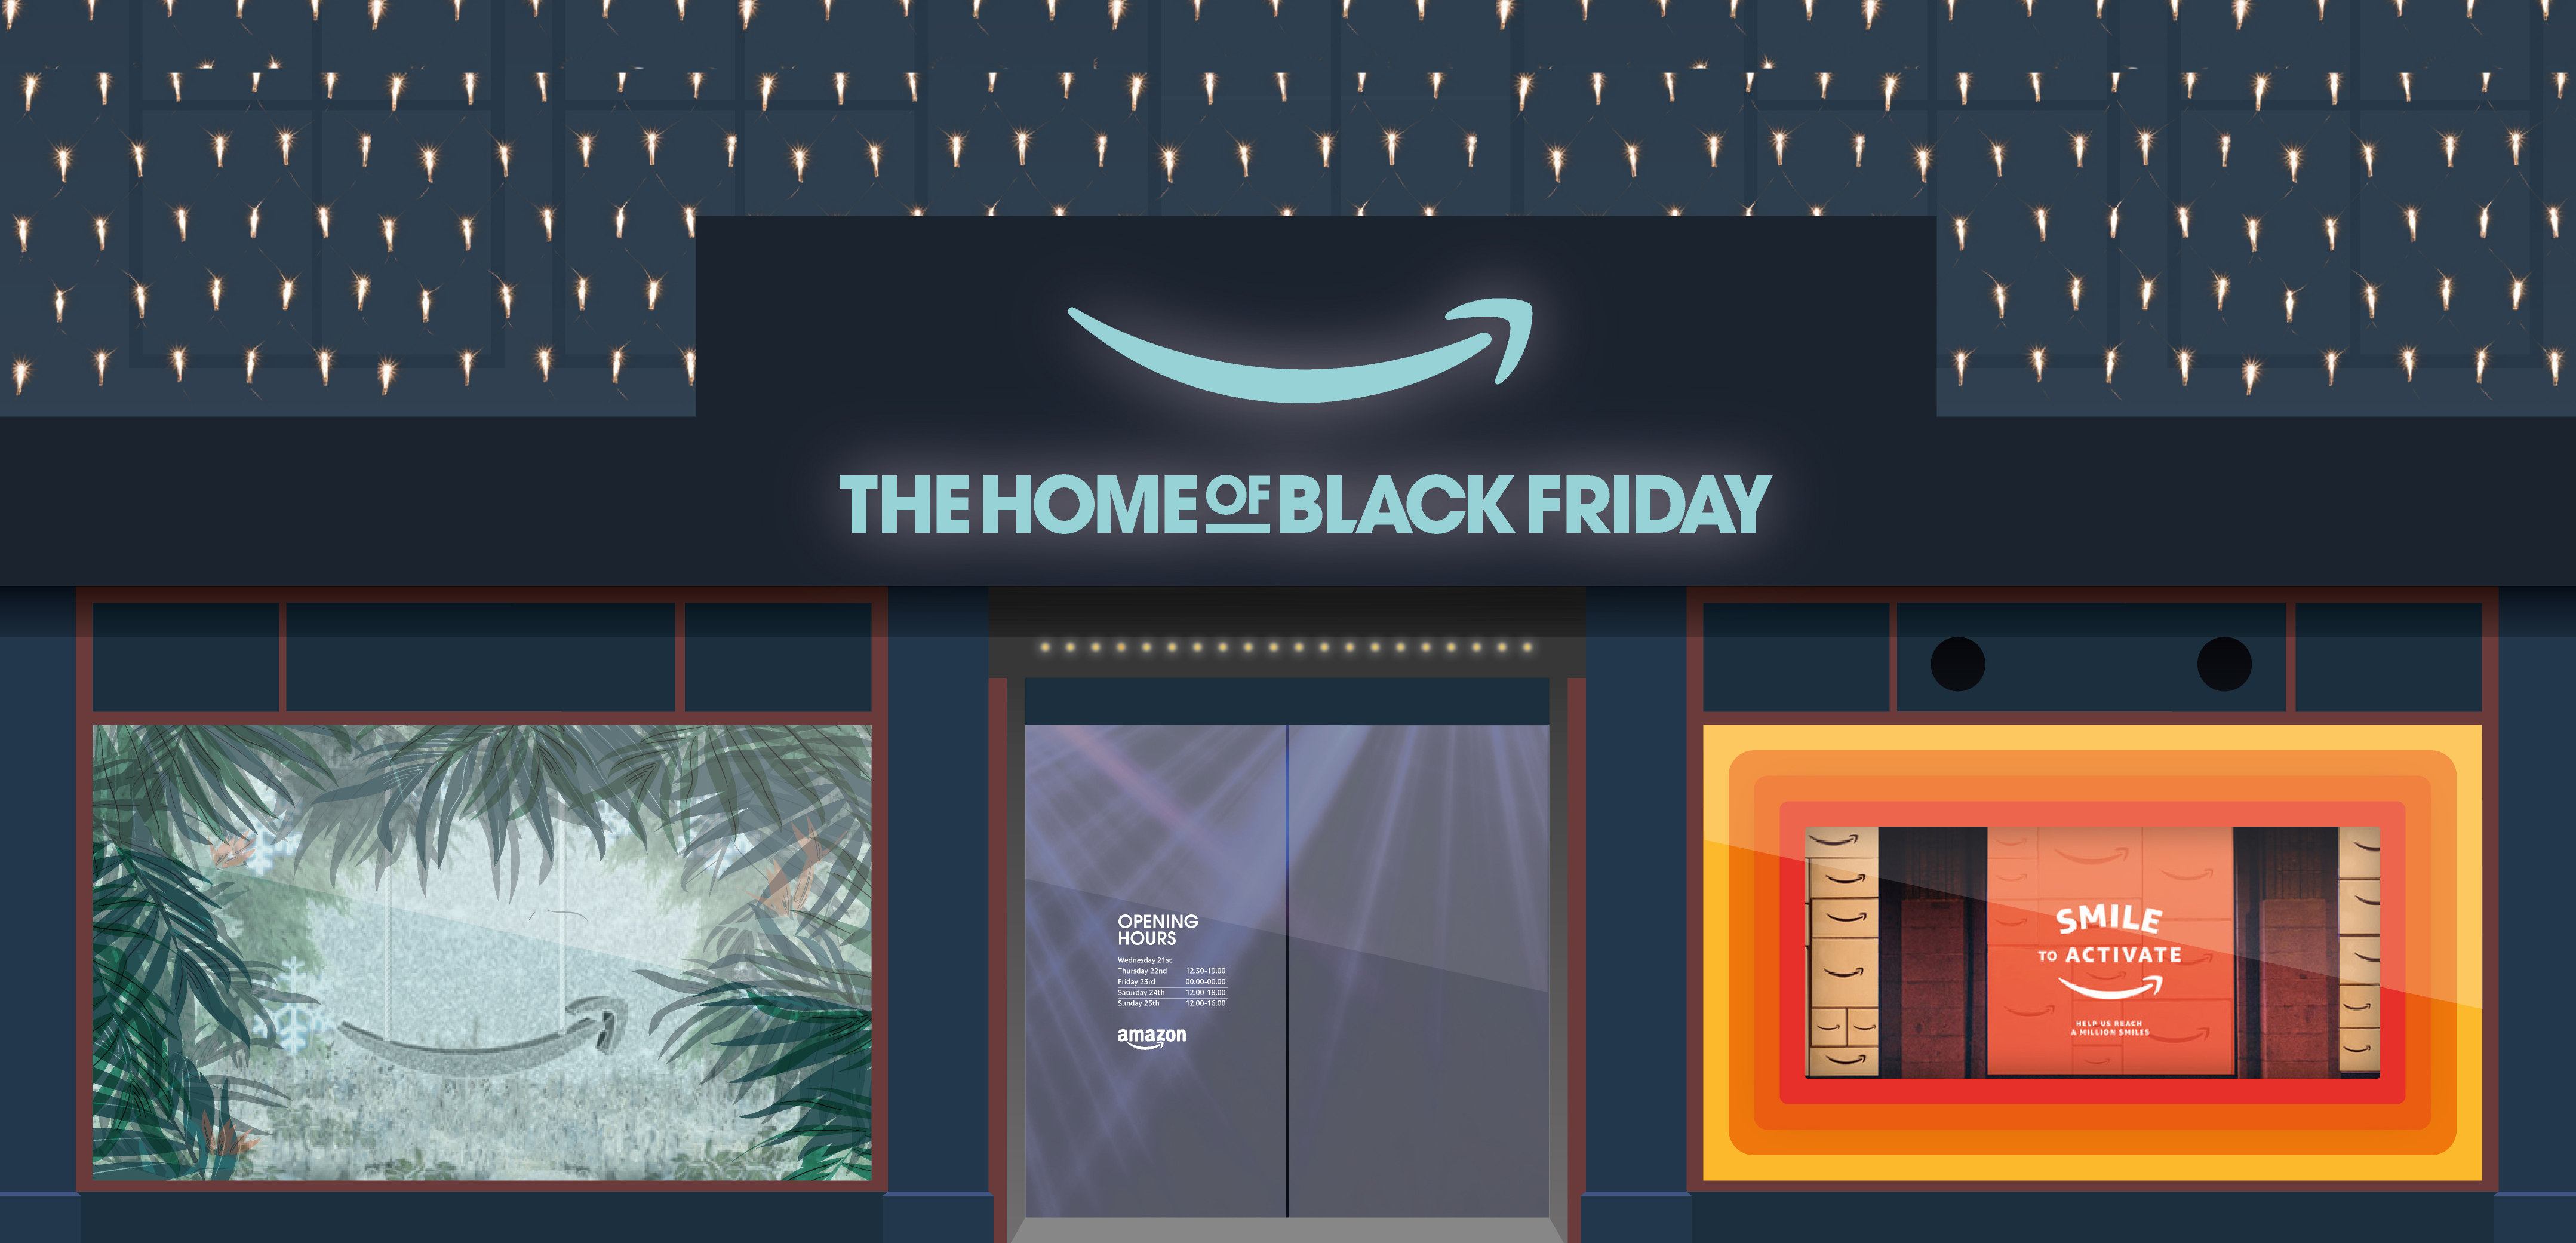 Home of Black Friday